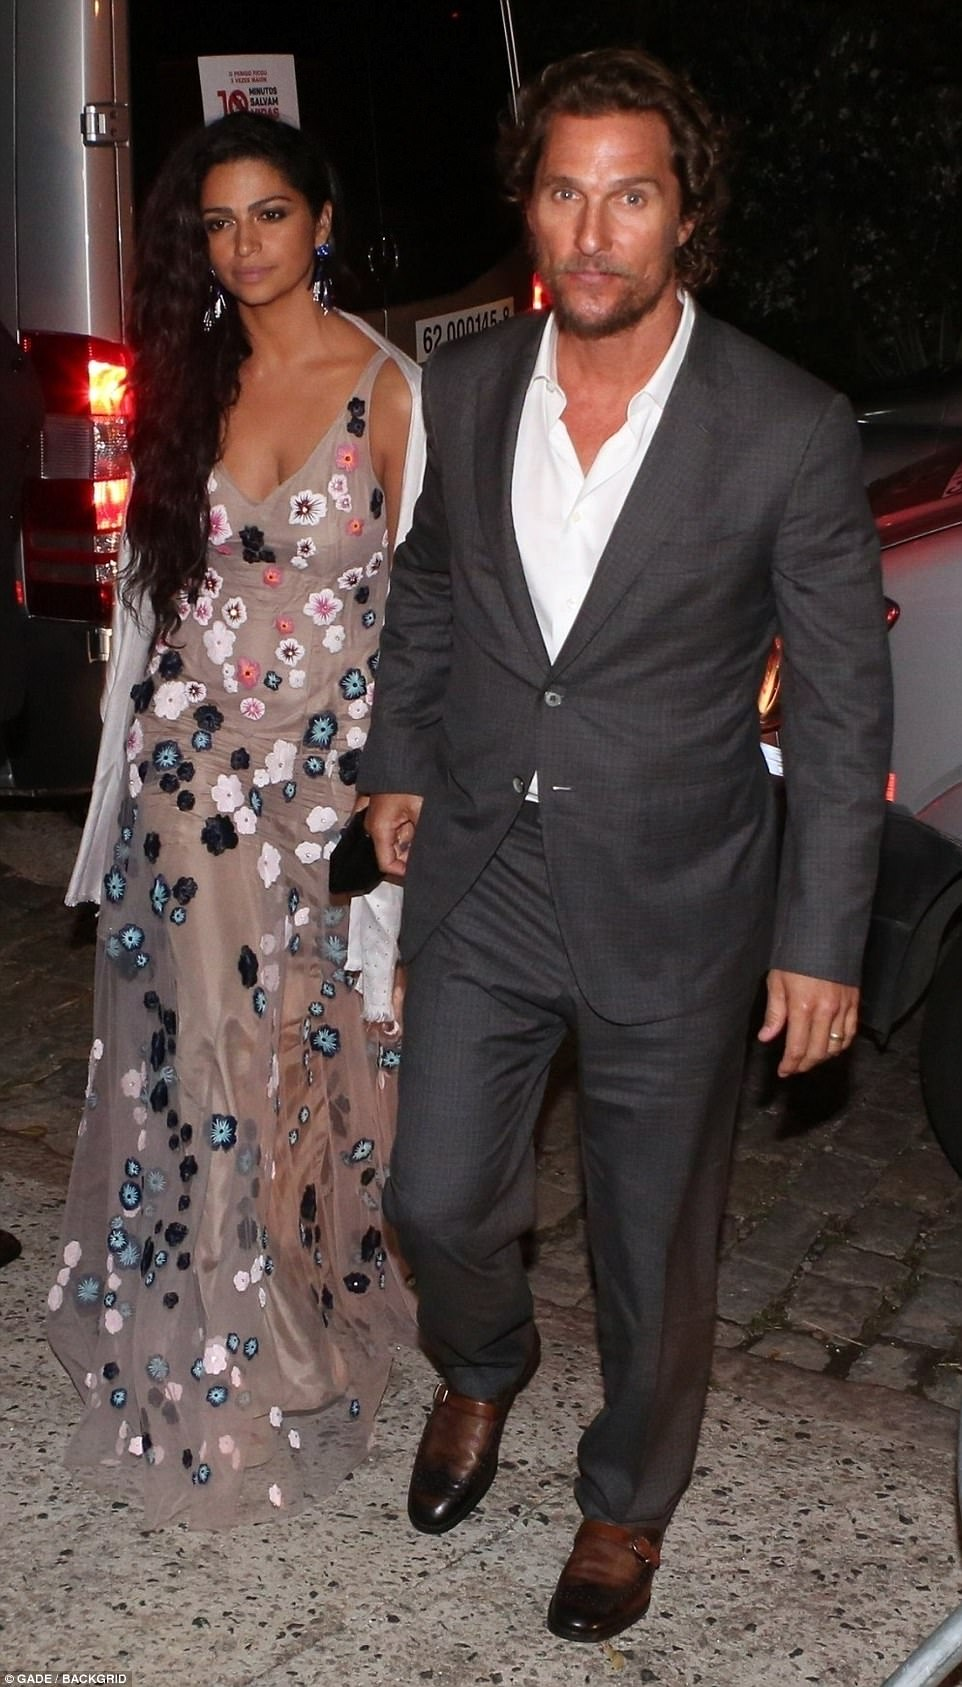 A-list couple: Oscar winner Matthew, 47, was accompanied by his Brazilian wife Camila Alves, whowore a diaphanous sleeveless gown with floral detailing and a plunging neckline